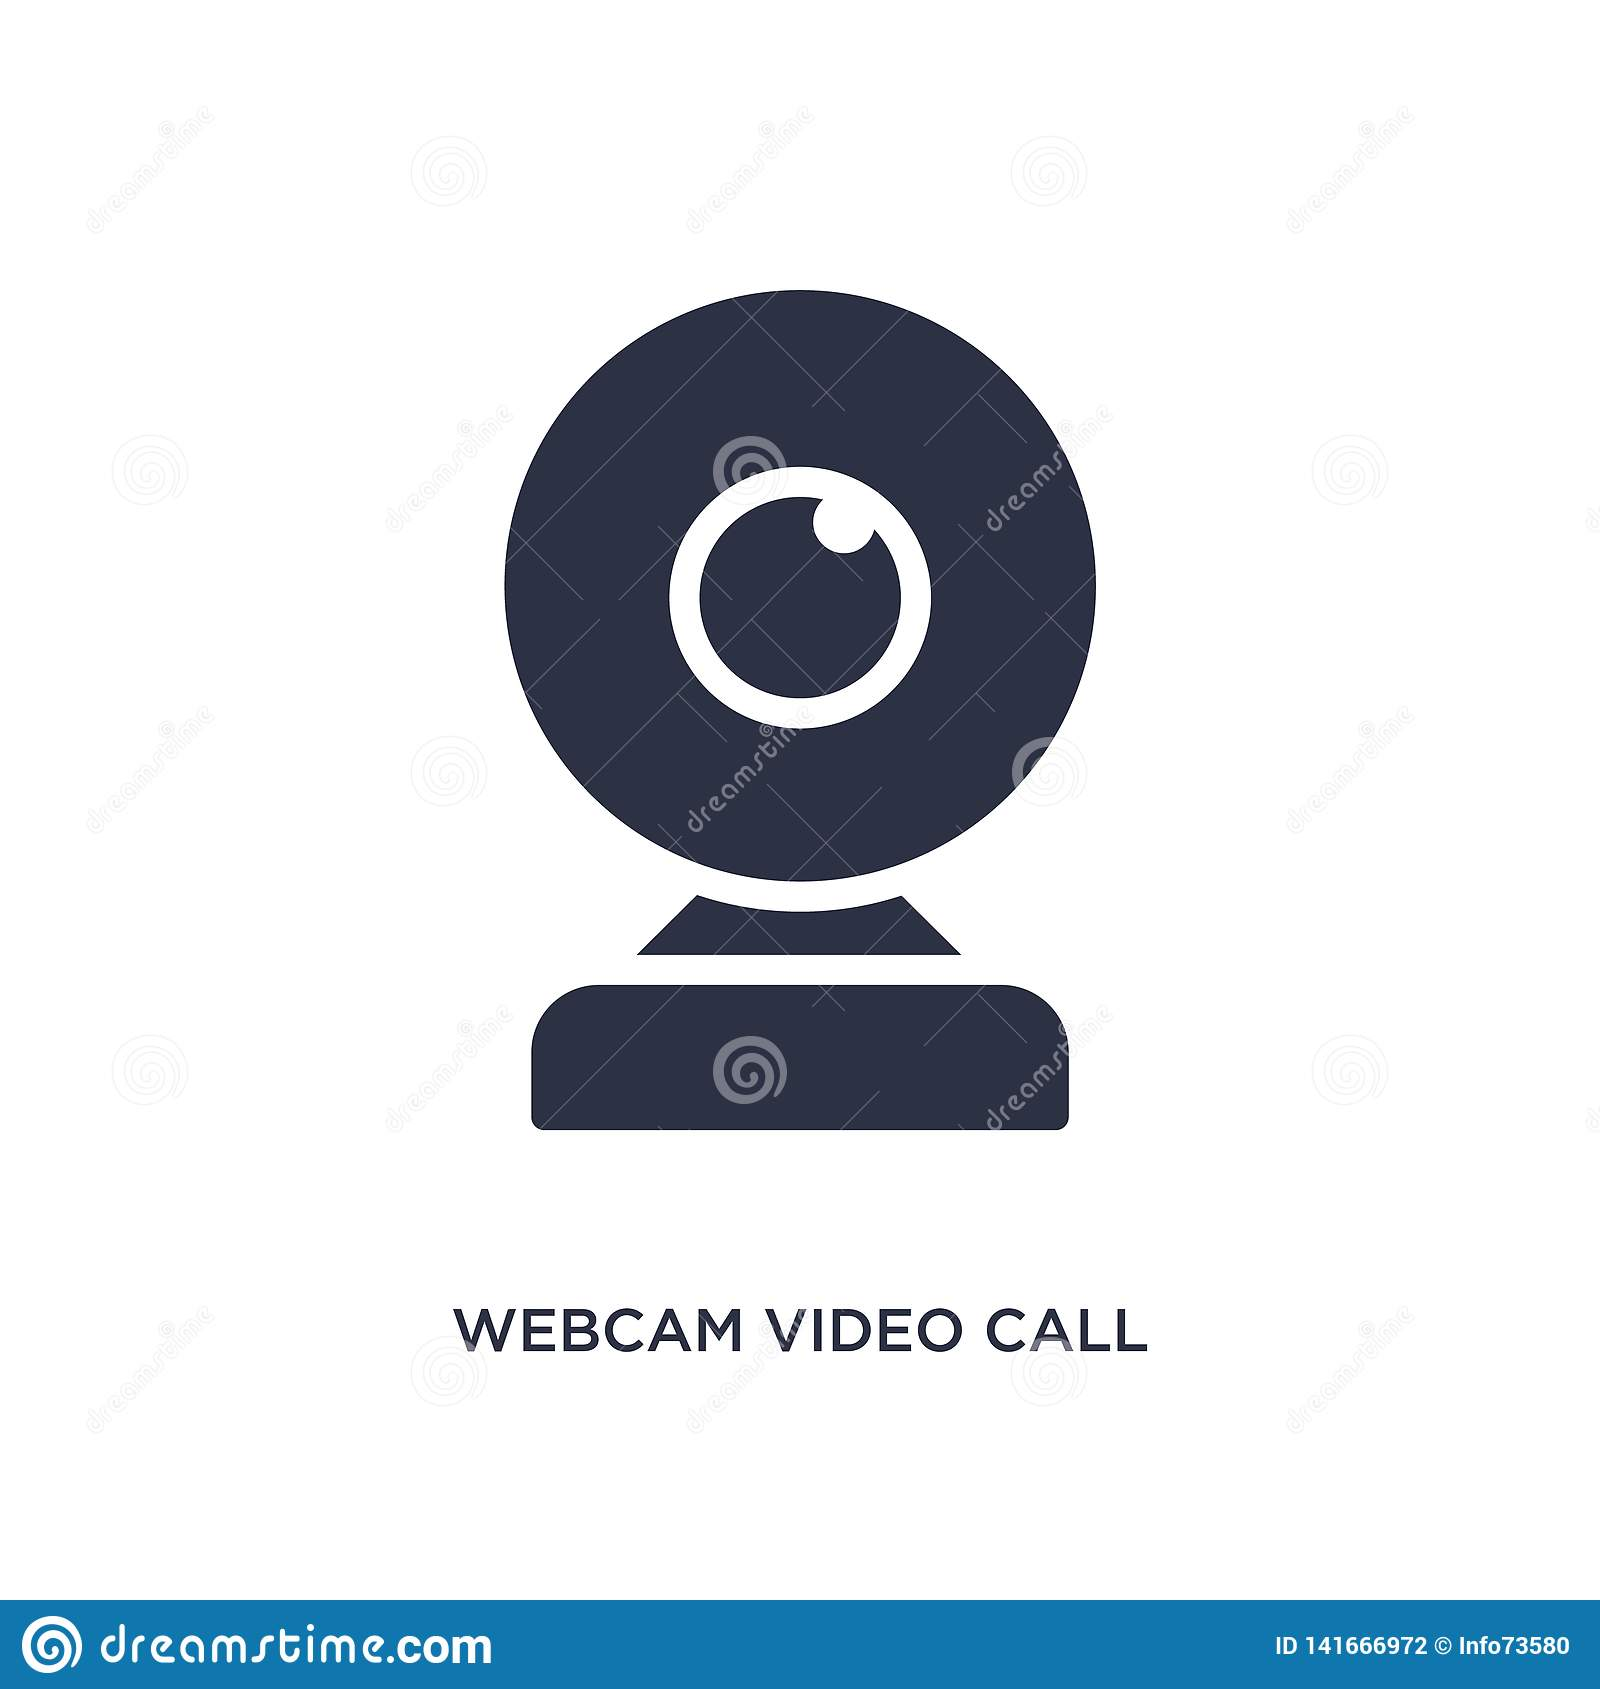 webcam video call icon on white background. Simple element illustration from music and media concept